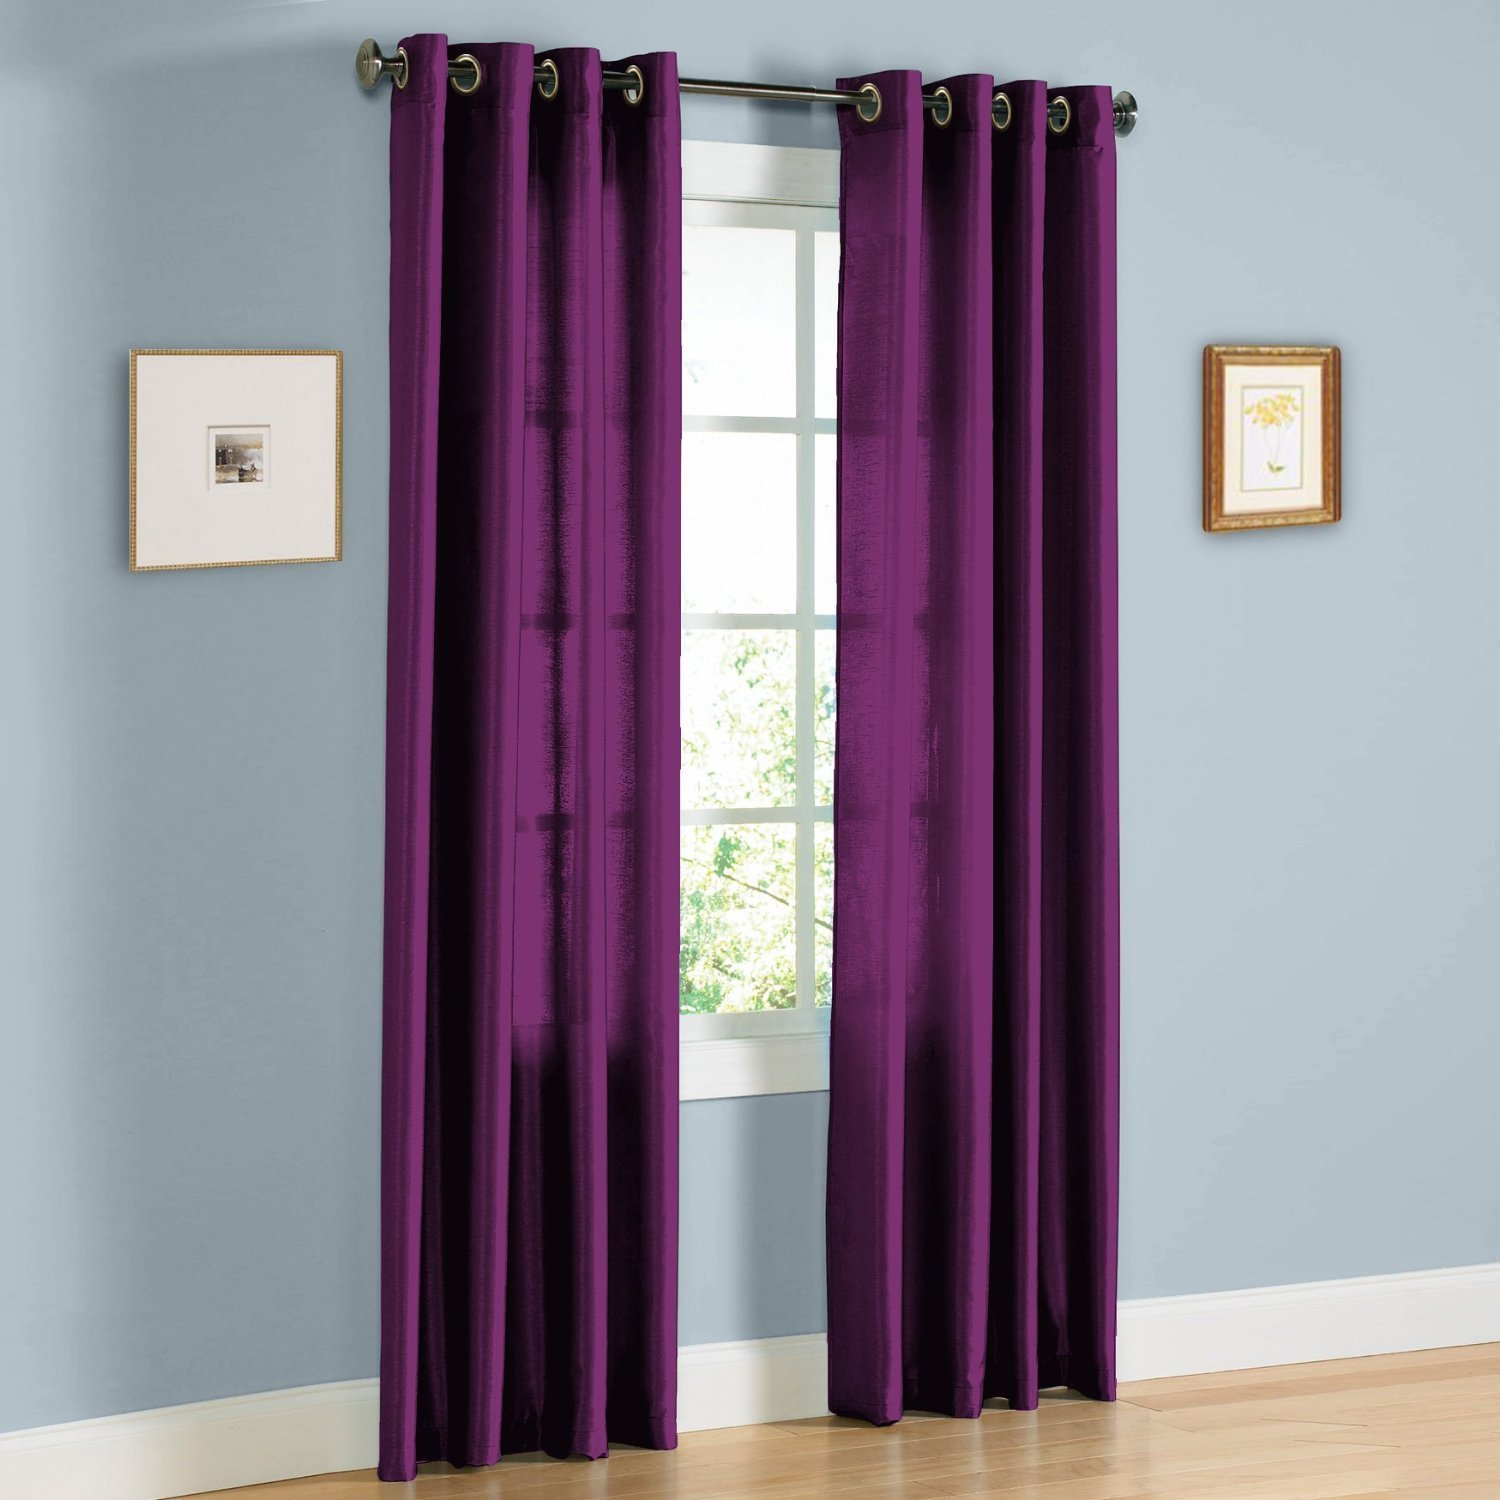 "1 PANEL MIRA  SOLID PURPLE SEMI SHEER WINDOW FAUX SILK ANTIQUE BRONZE GROMMETS CURTAIN DRAPES 55 WIDE X 63"" LENGTH"